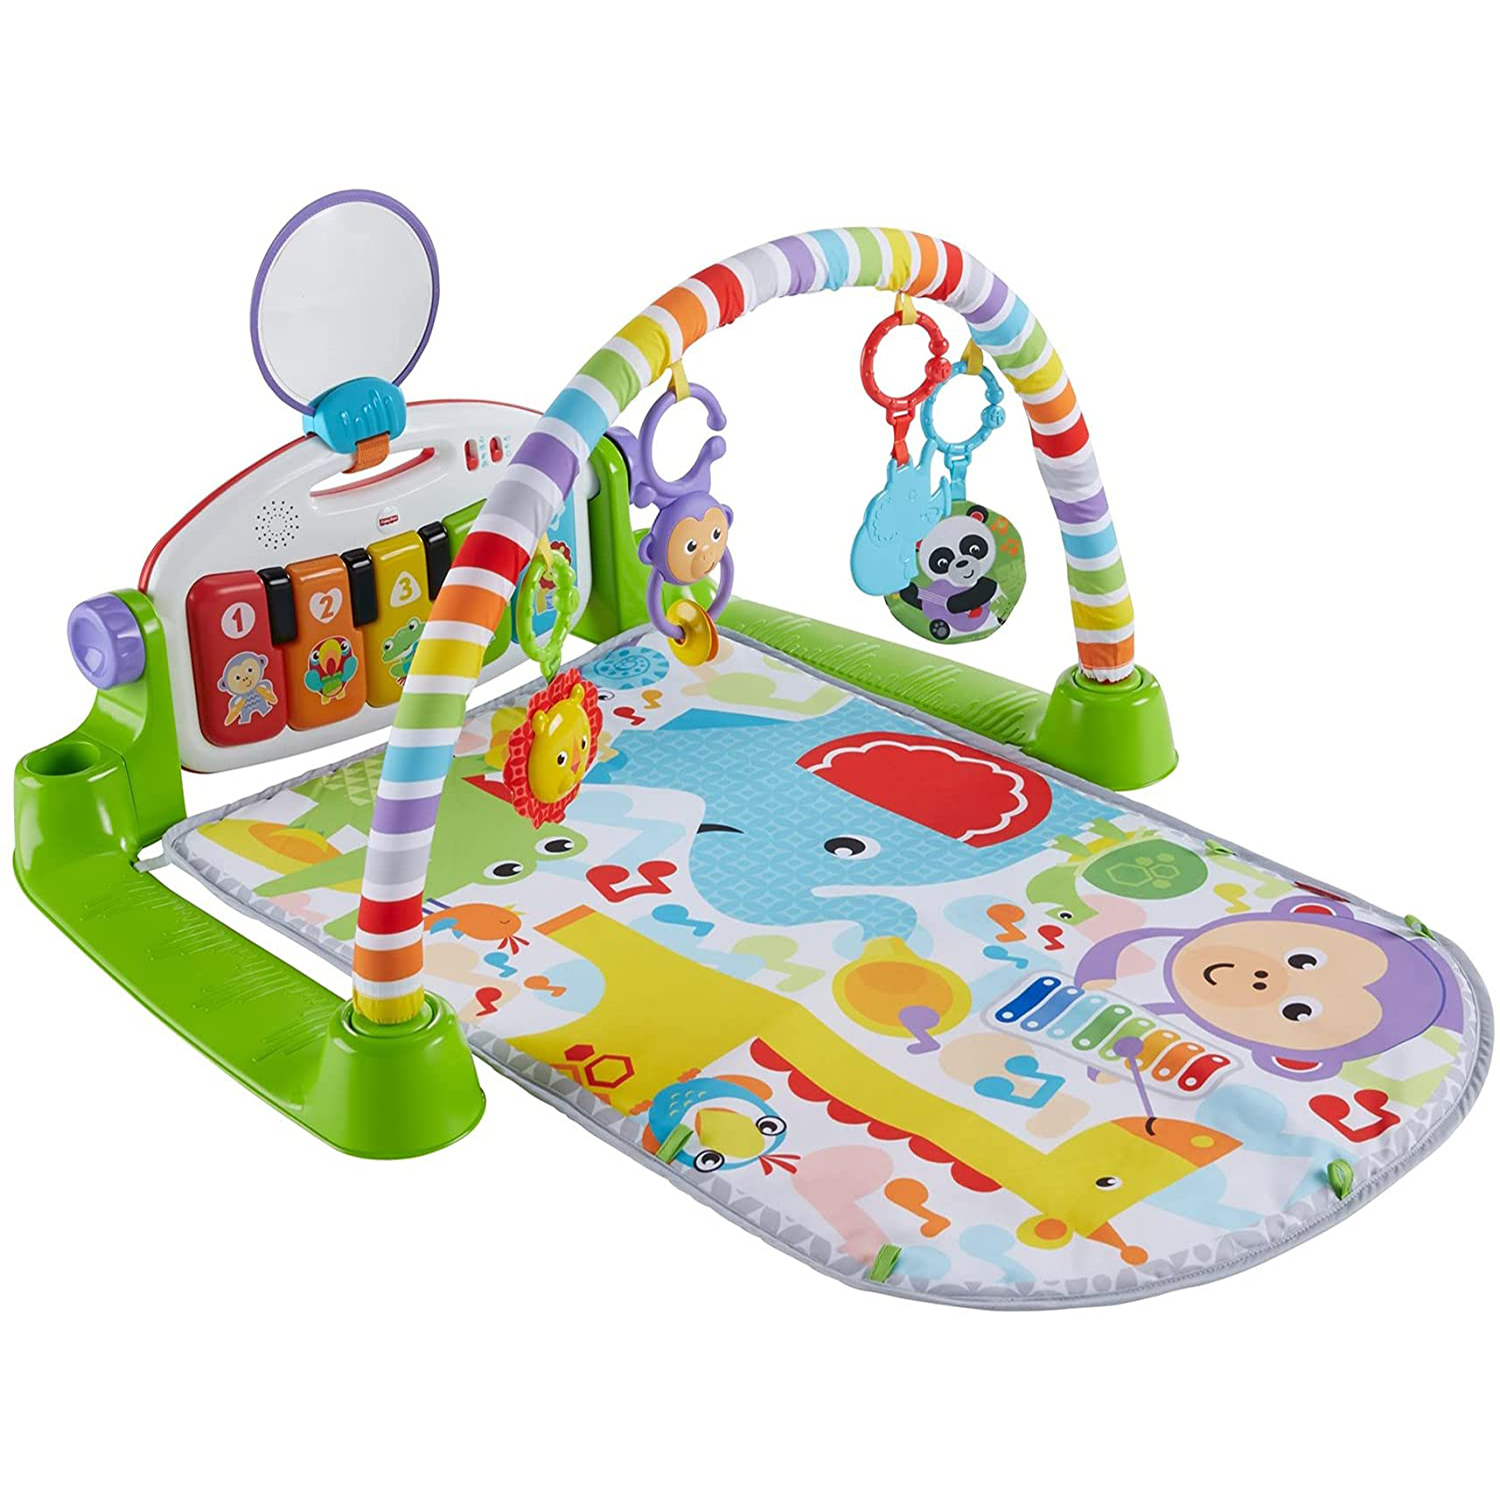 Best Toy for 6-Month-Olds: Fisher-Price Deluxe Kick & Play Piano Gym